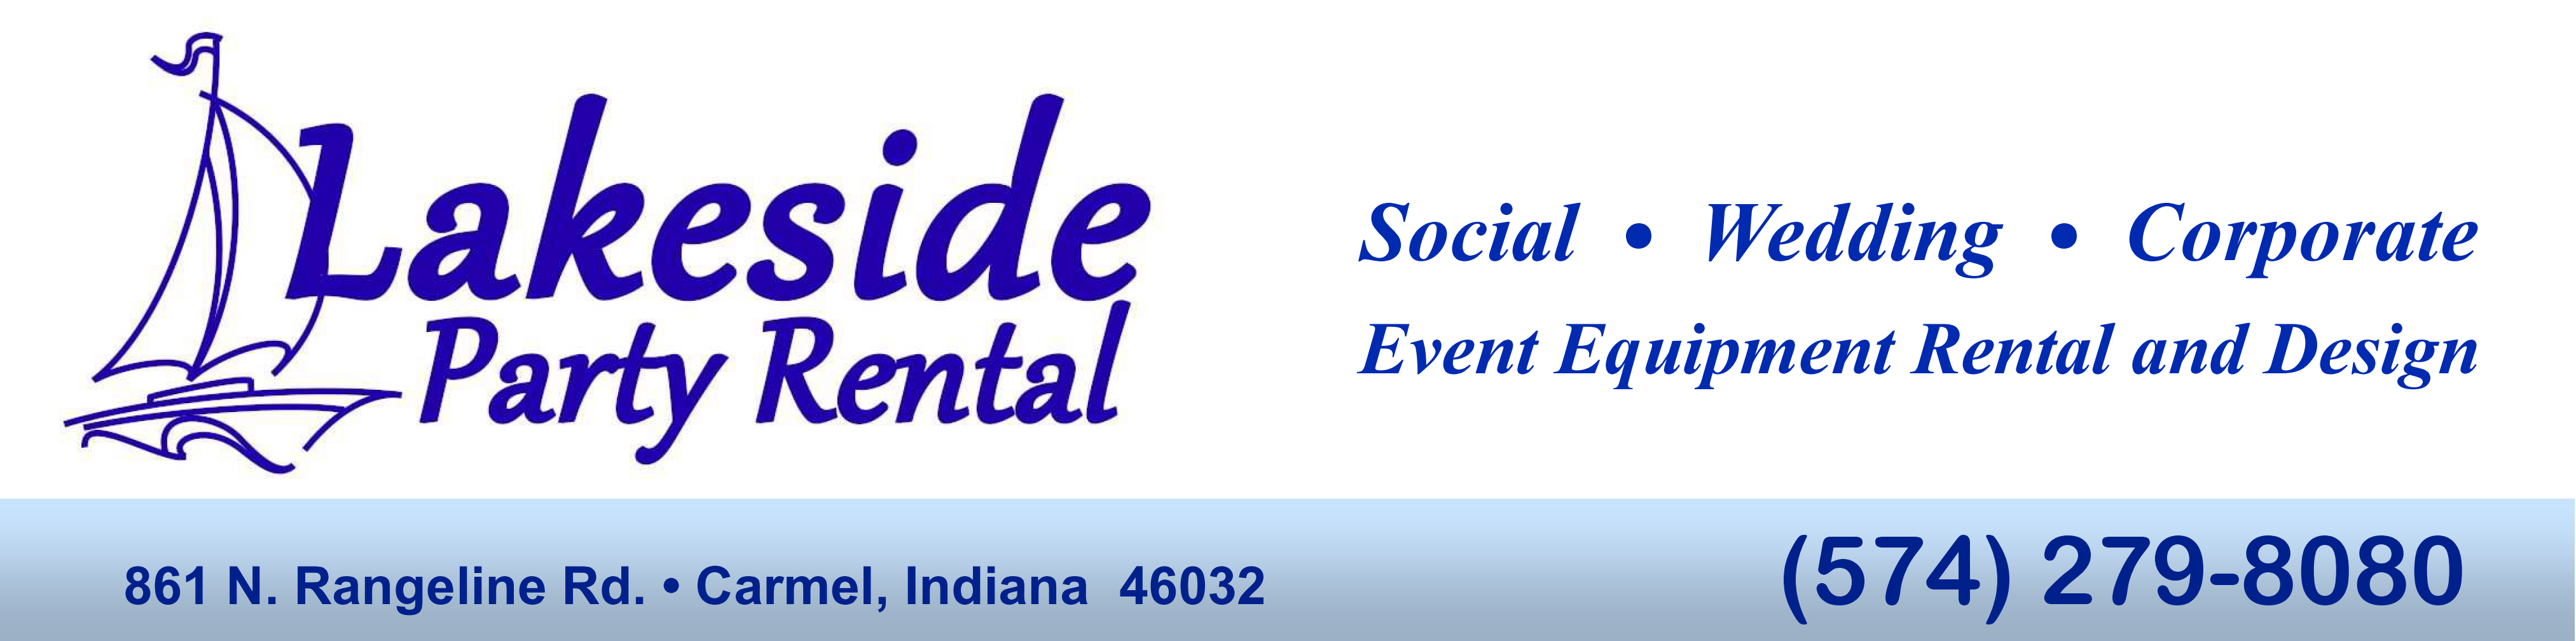 Party Rental Equipment from Lakeside party rental serving North Central Indiana.